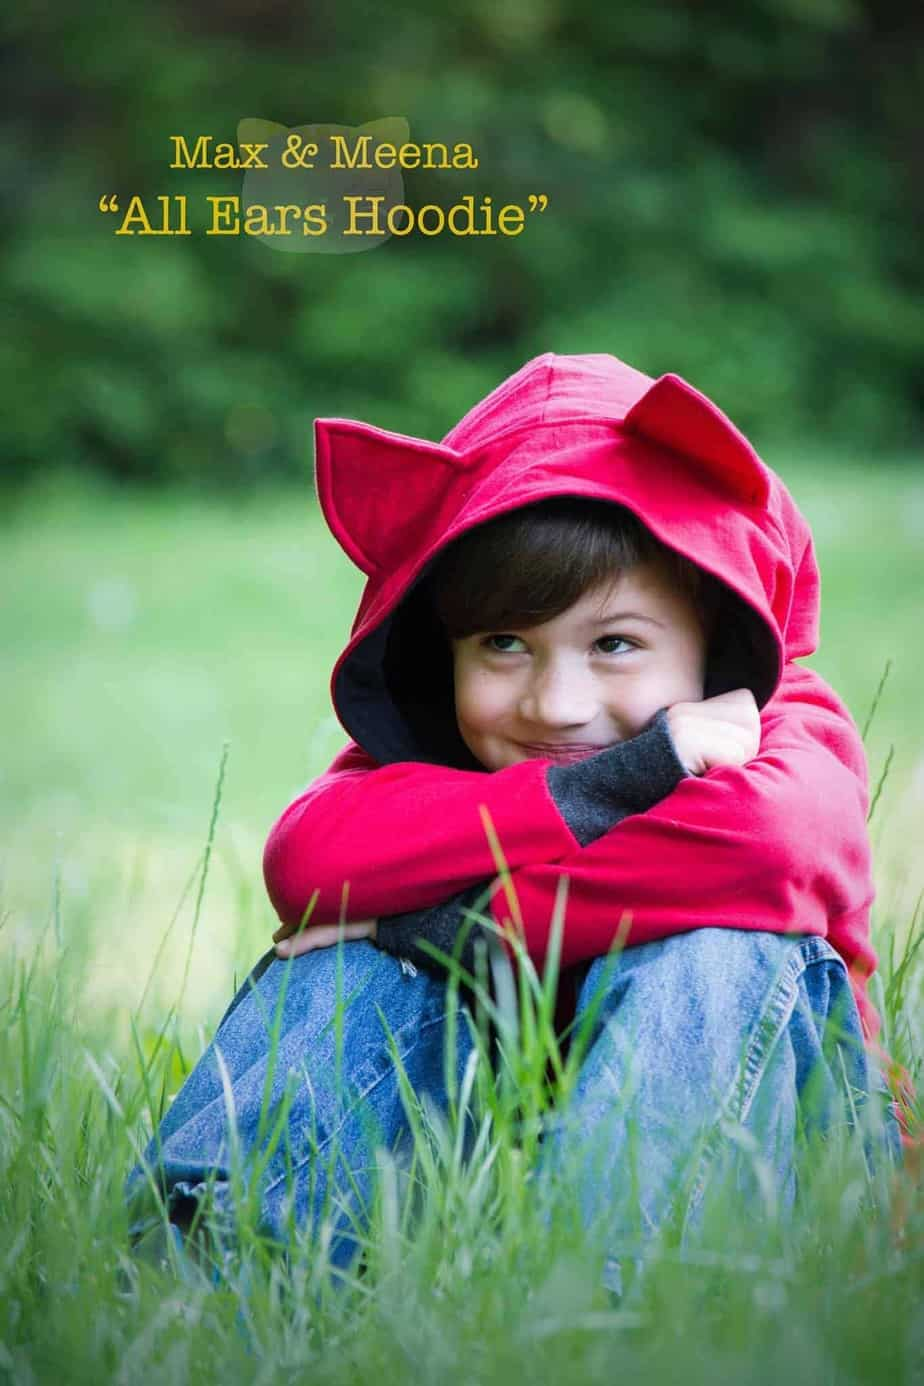 All Ears kids hoodie pattern from Max and Meena. Over a dozen animal options - so cute!